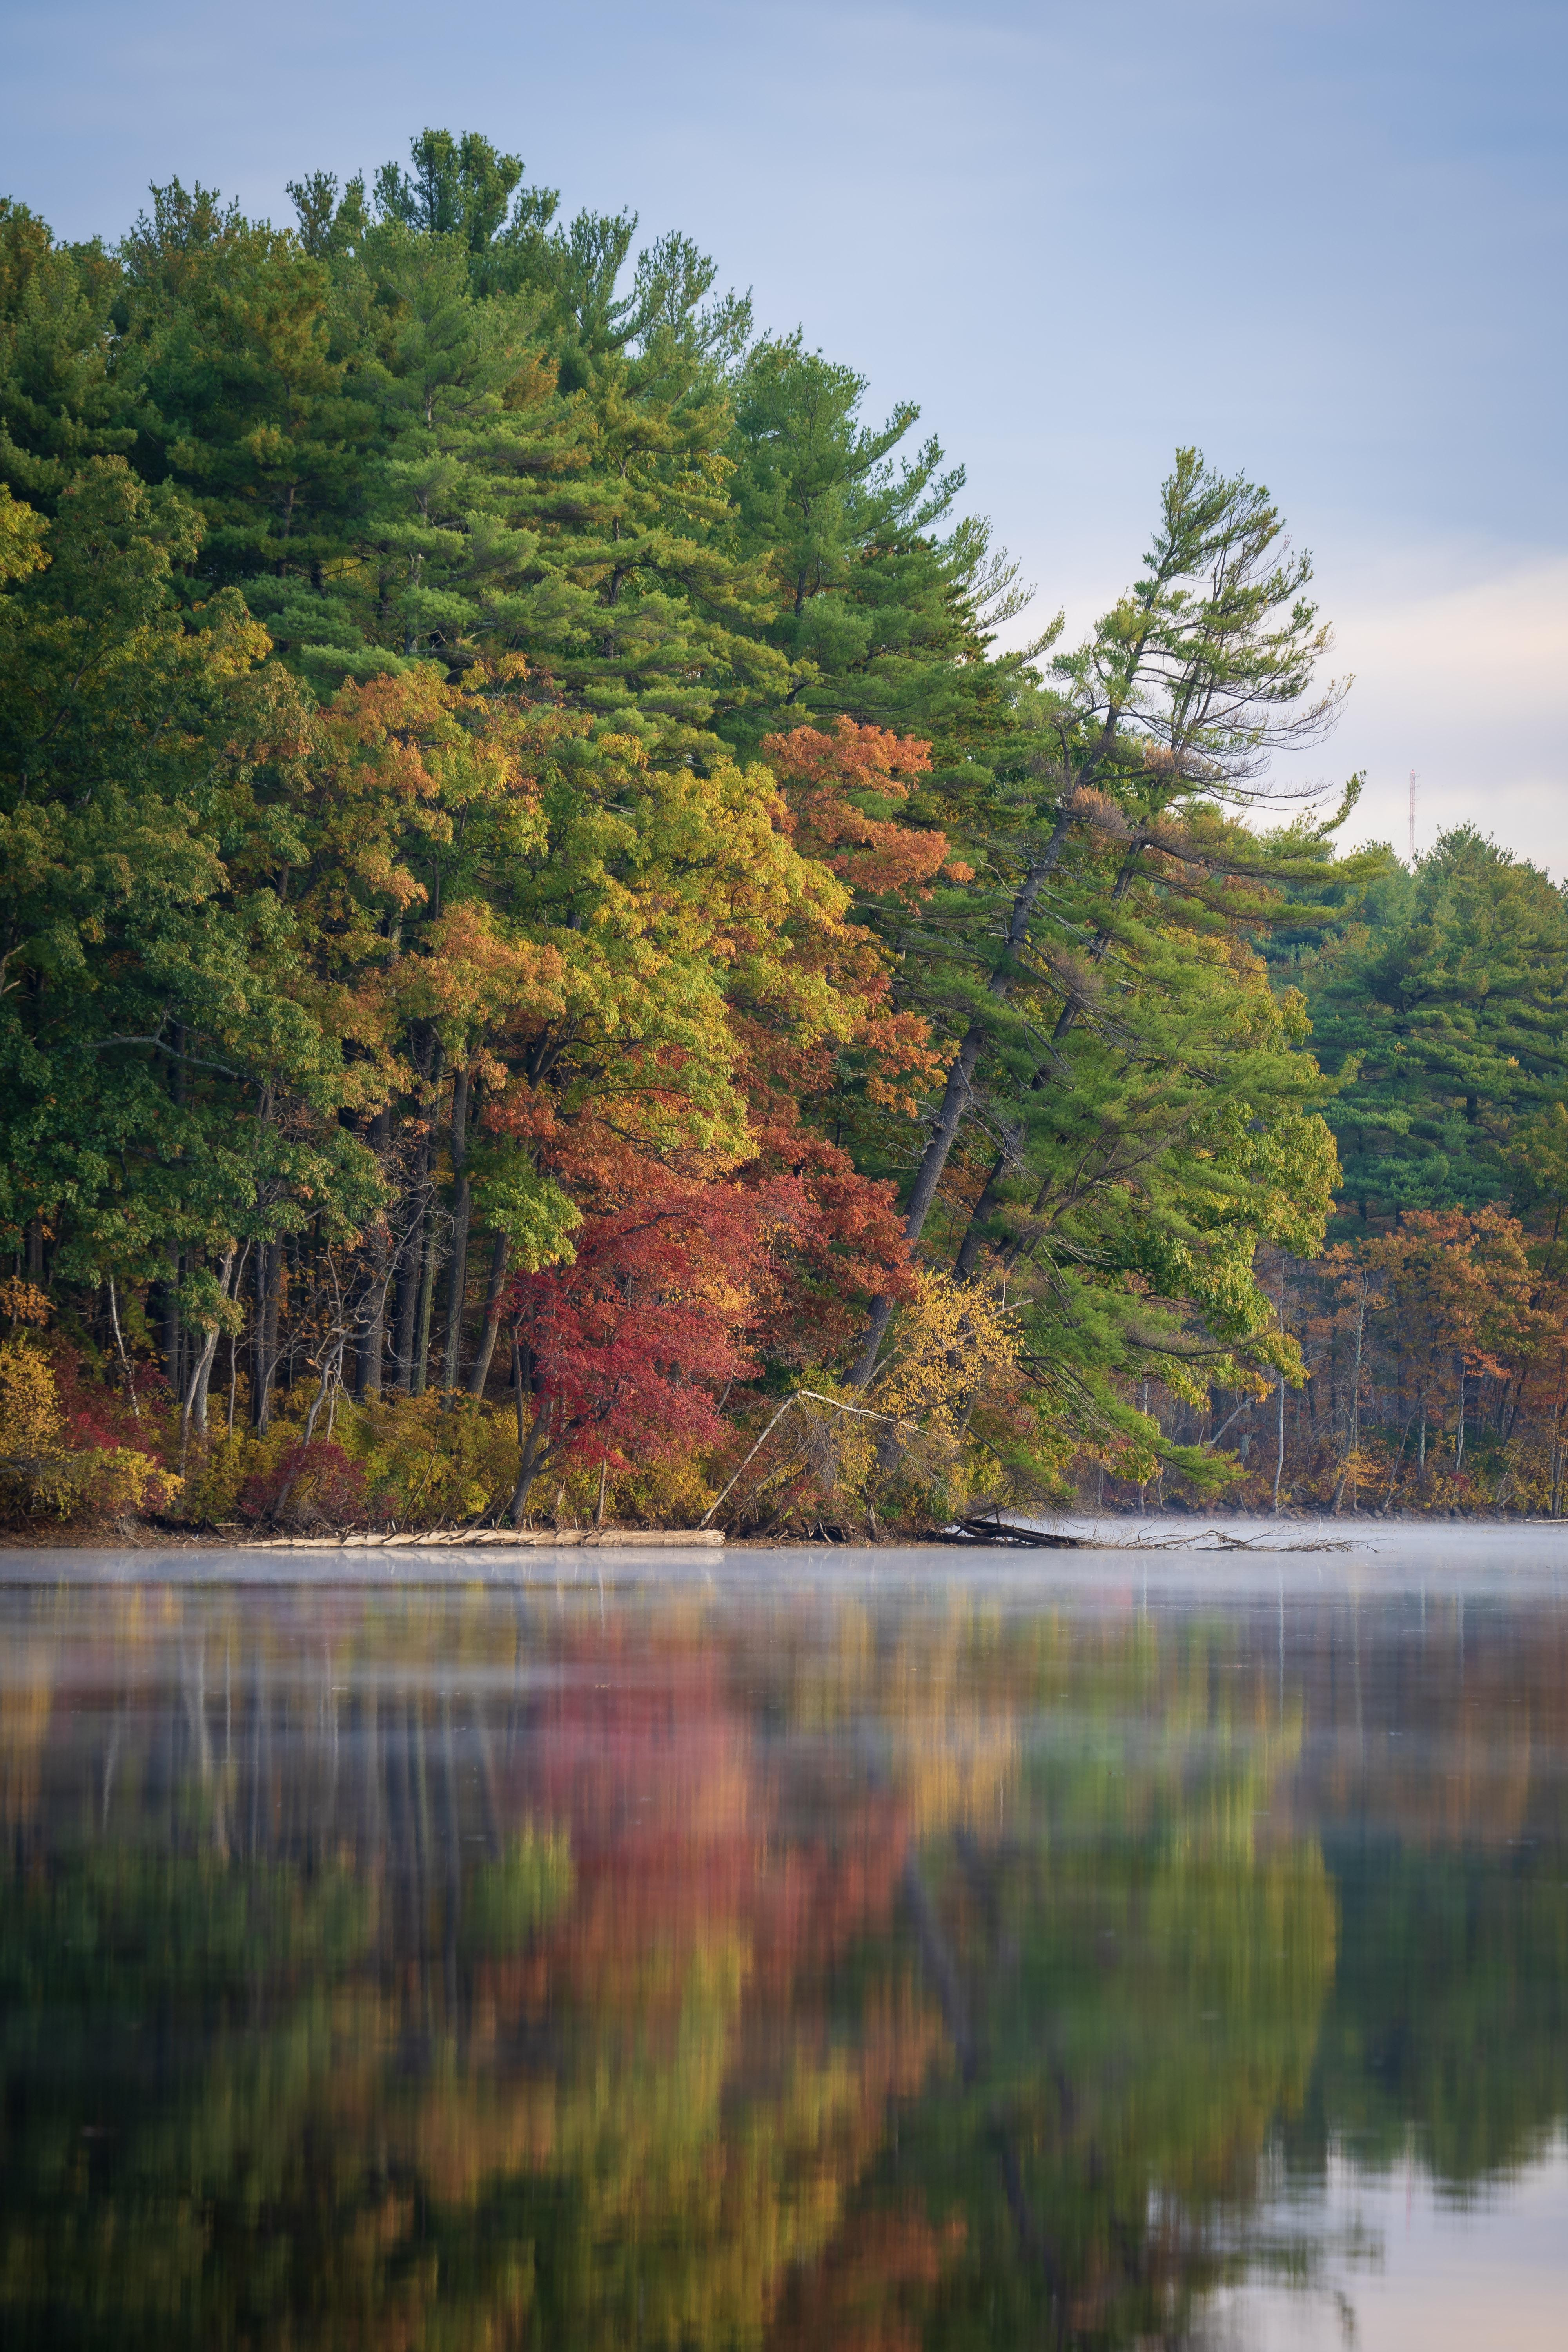 Autumn Colors at Haggett's Pond in Massachusetts